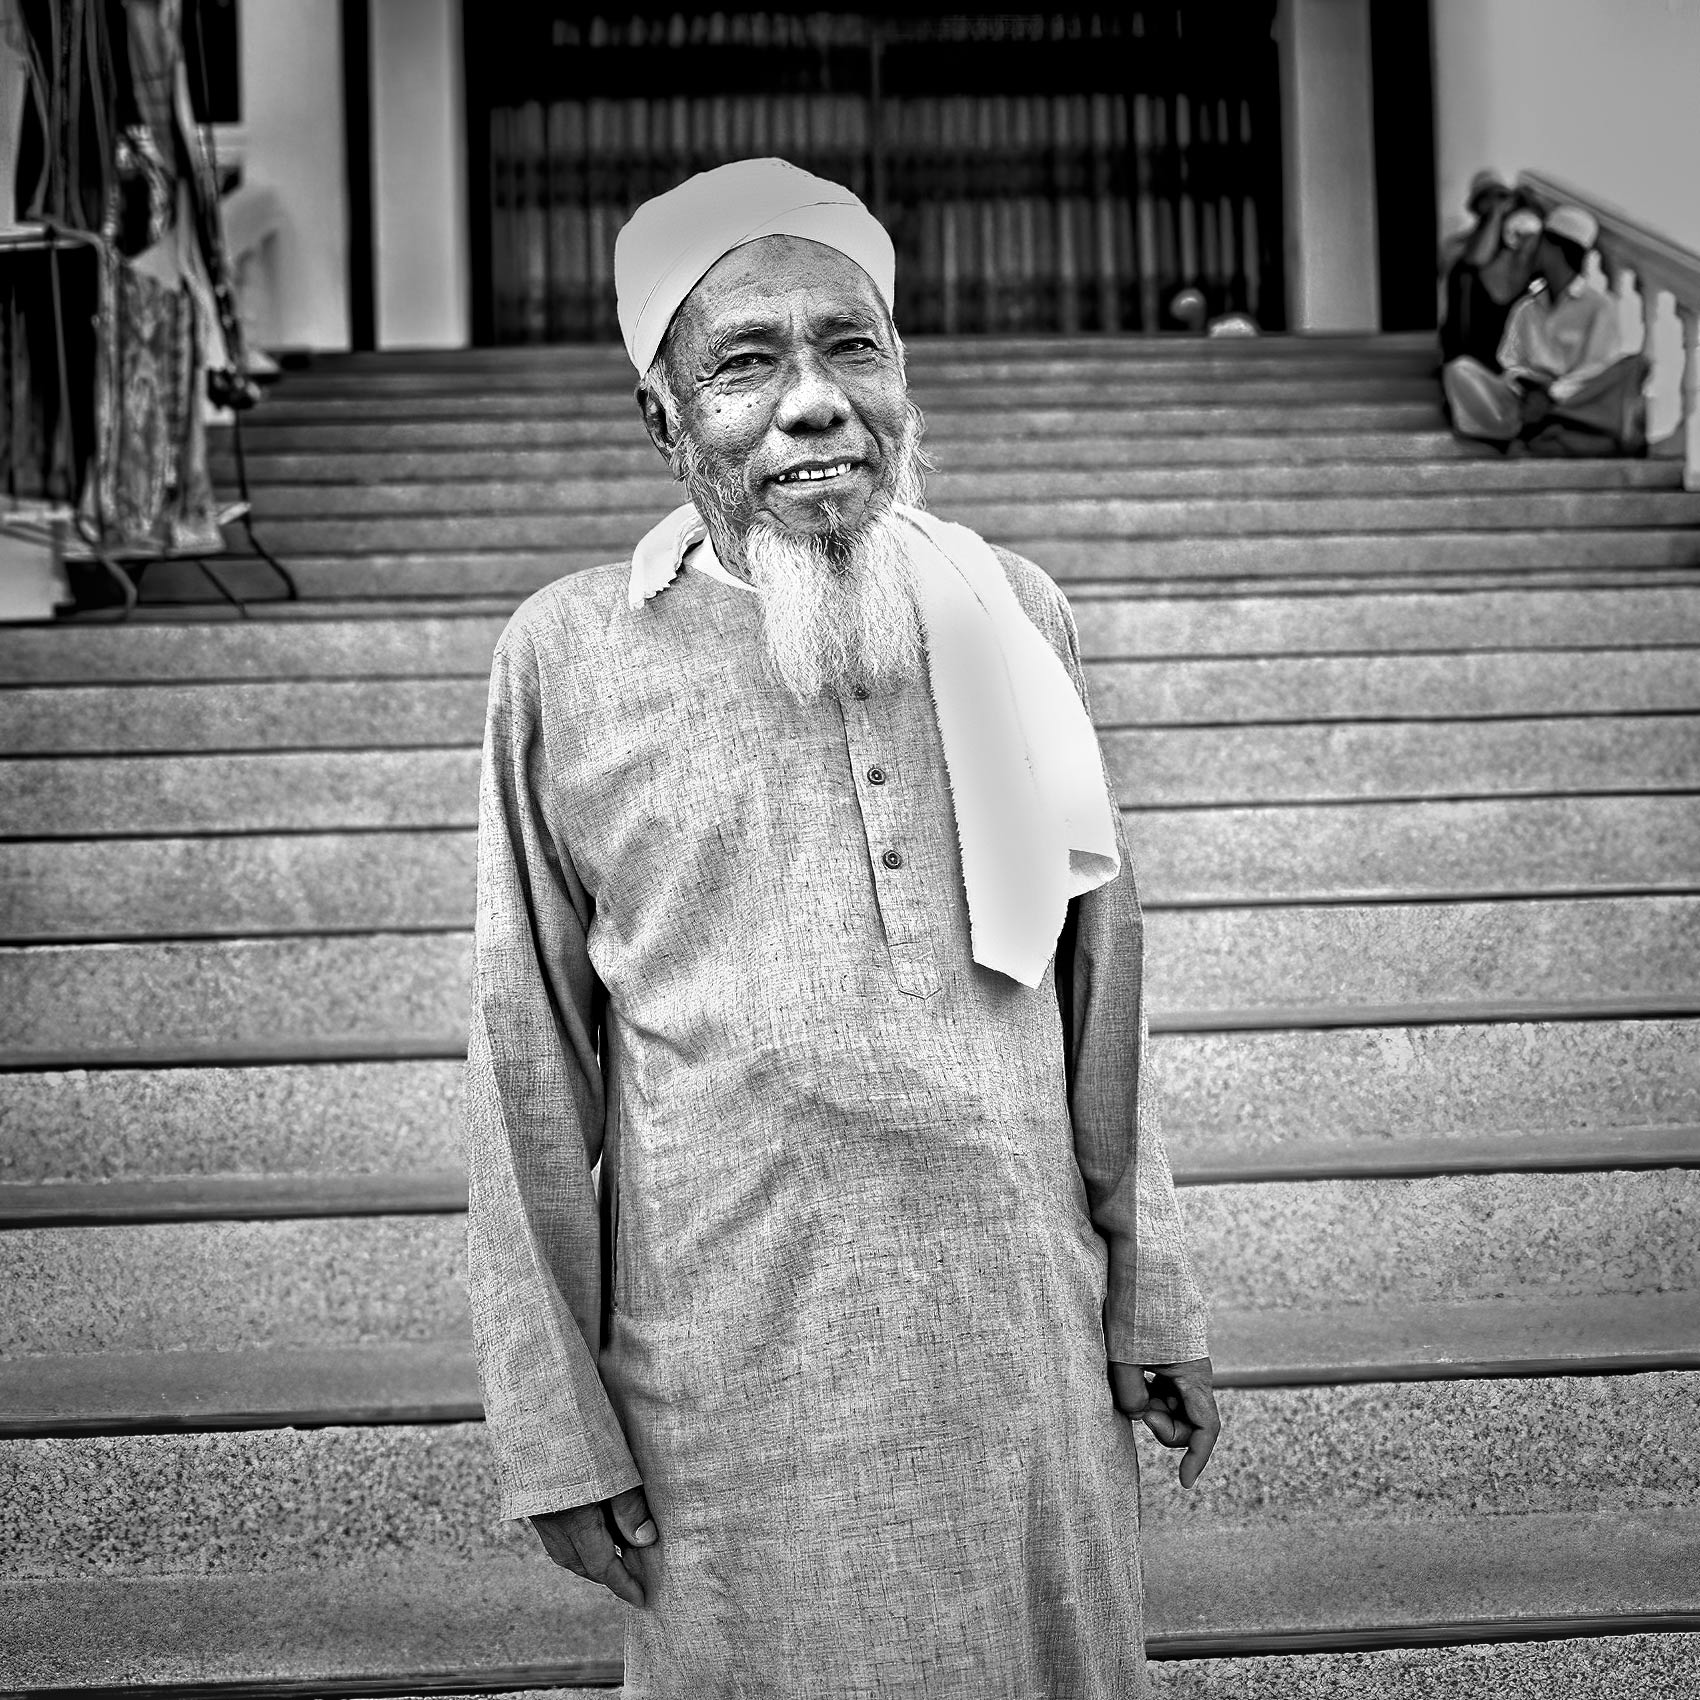 a-muslim-man-who-is-a-rohingya-minority-in-myanmar-poses-for-a-photo-outside-a-mosque-in-rakhine-state